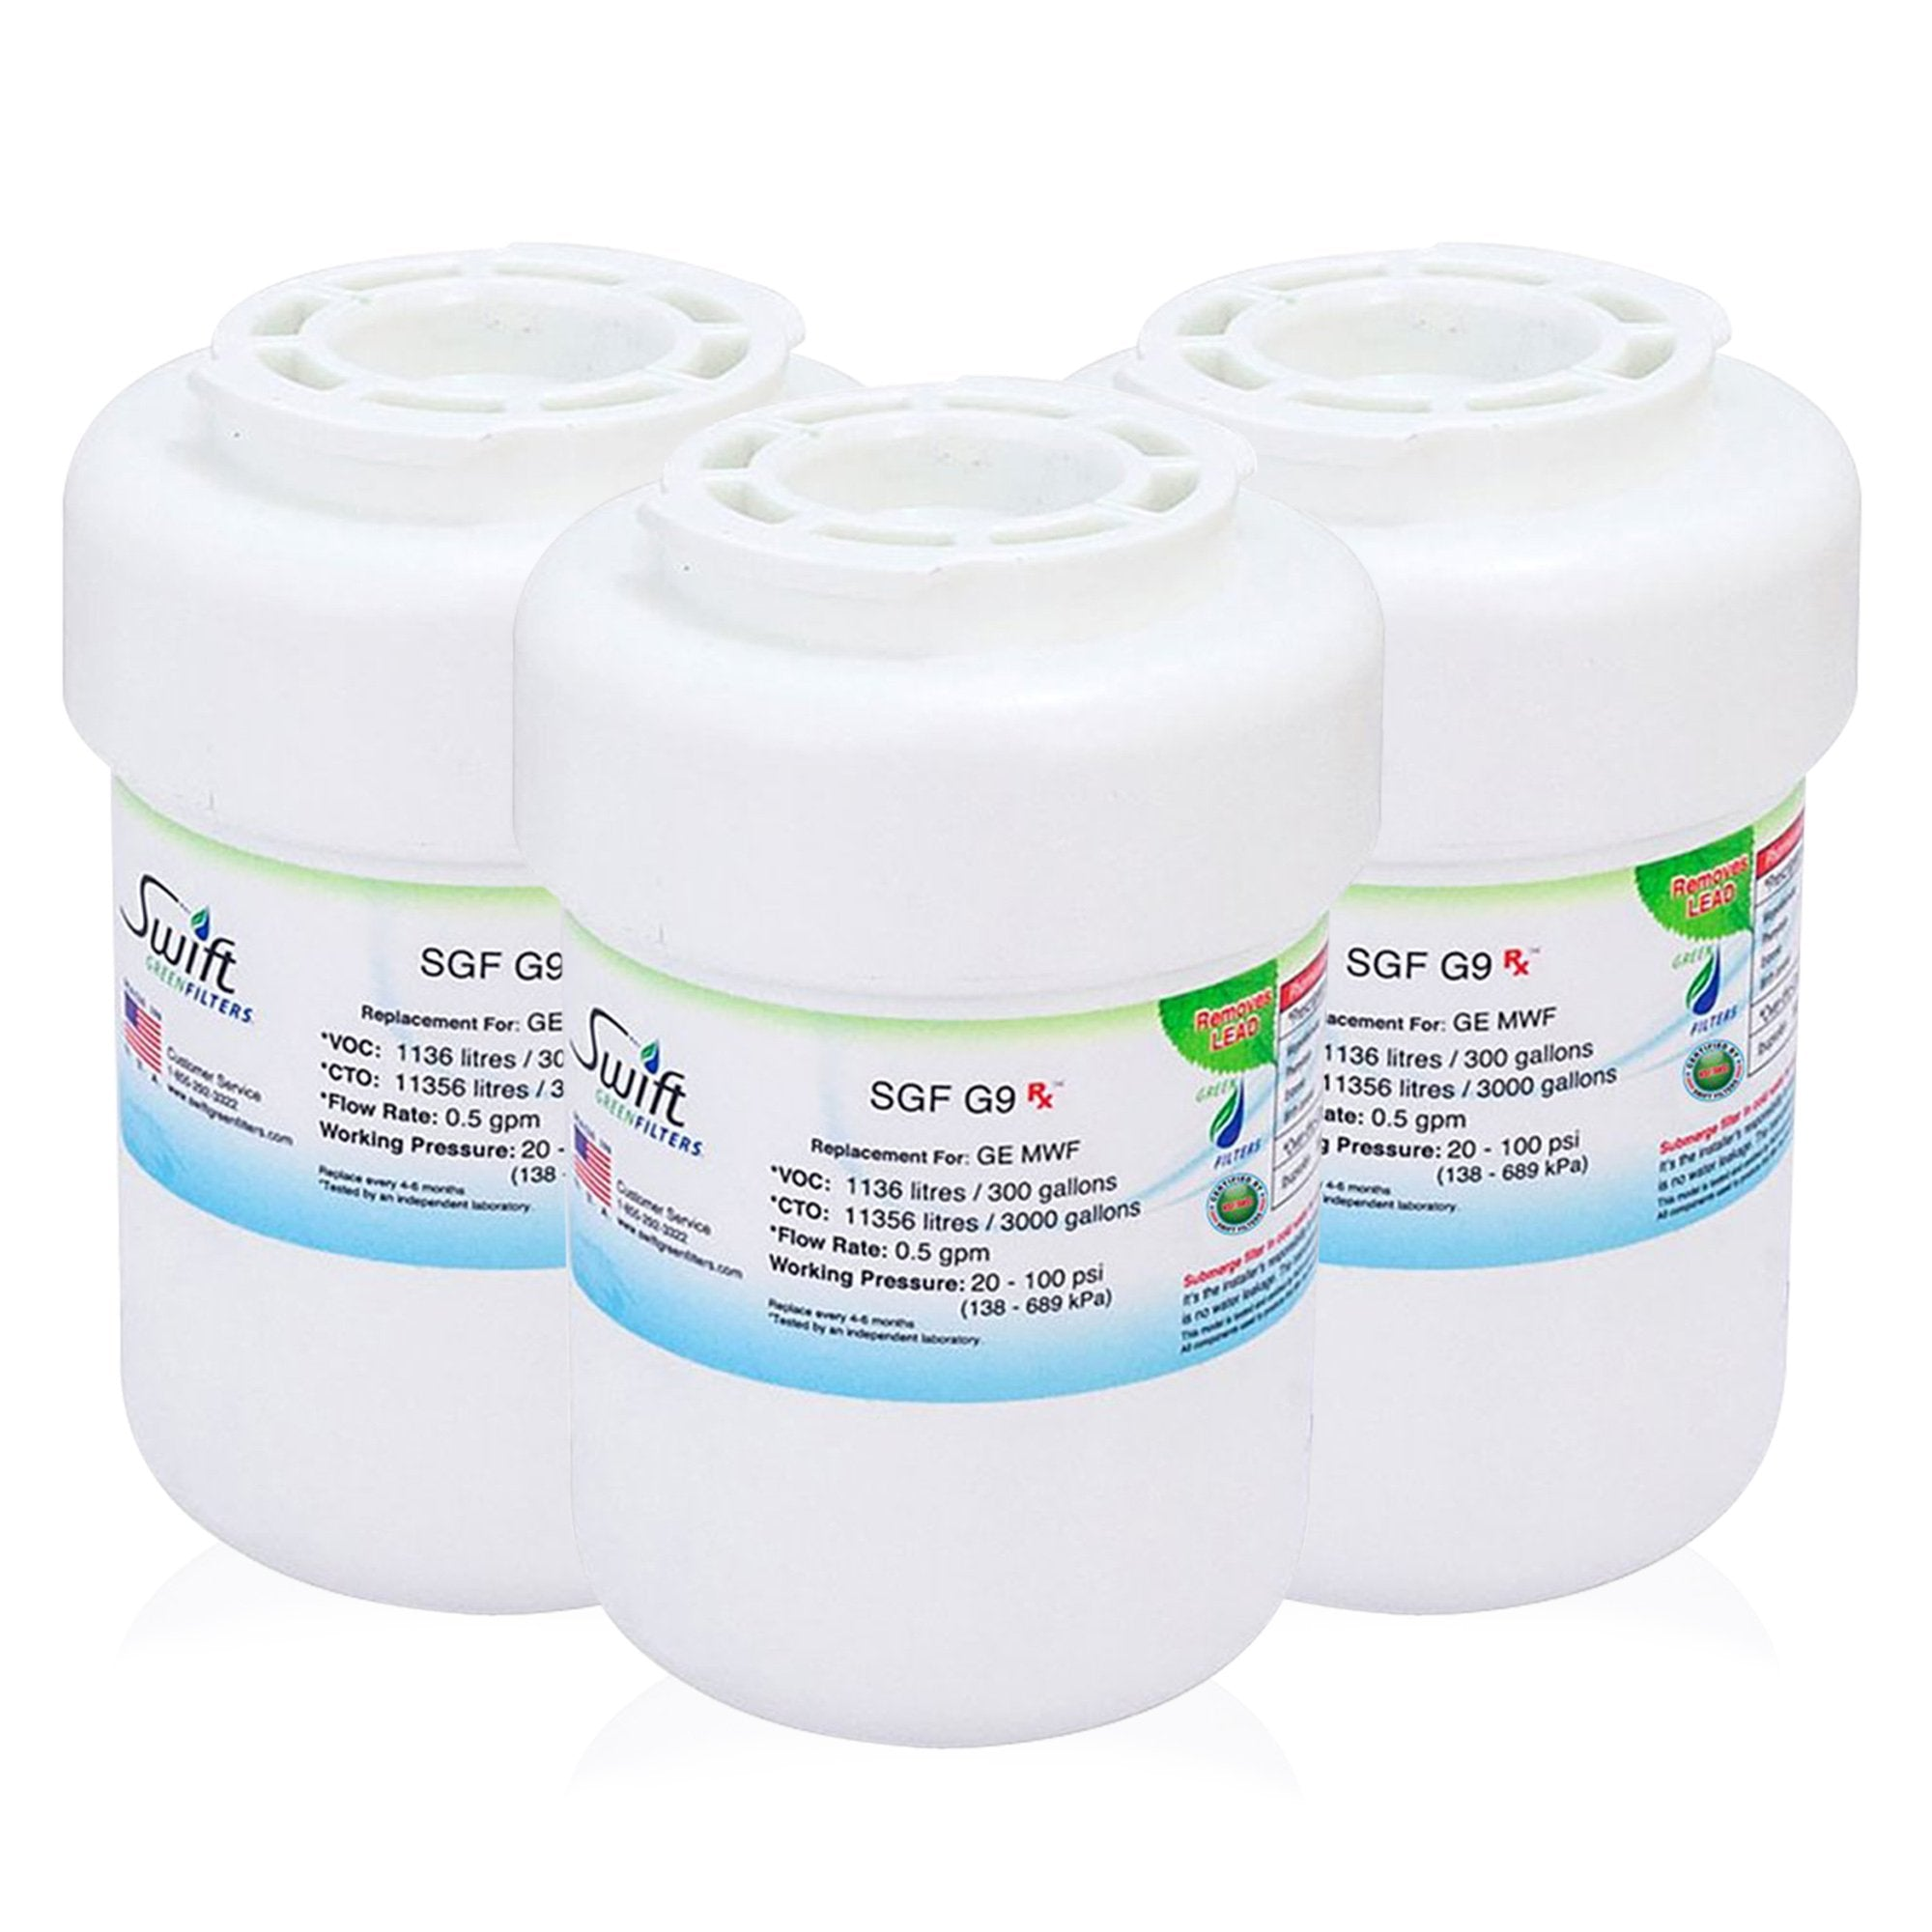 GE MXRC Compatible Pharmaceutical Refrigerator Water Filter